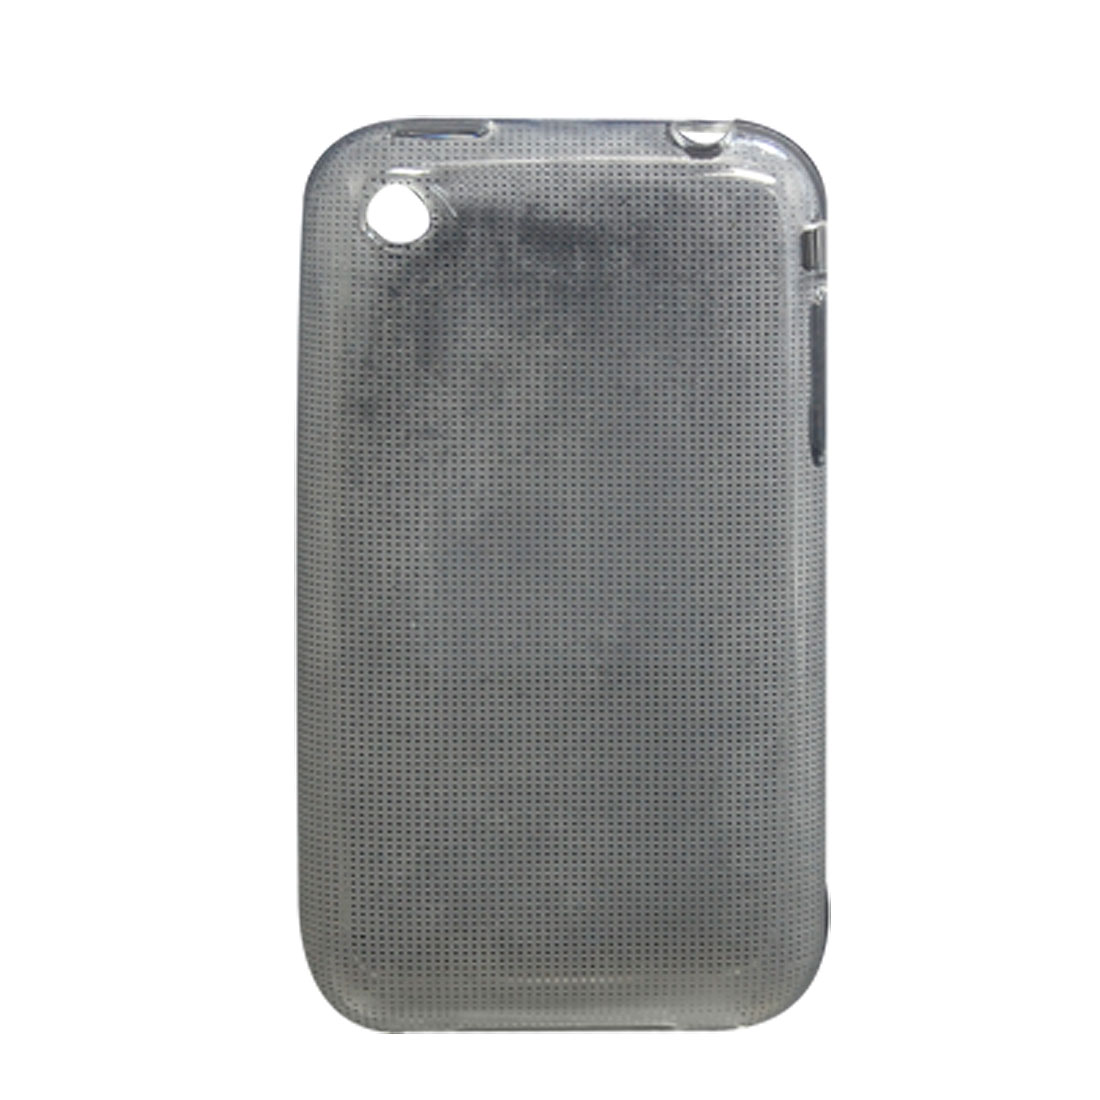 Soft Plastic Protecter Cover Case for Apple iPhone 3G